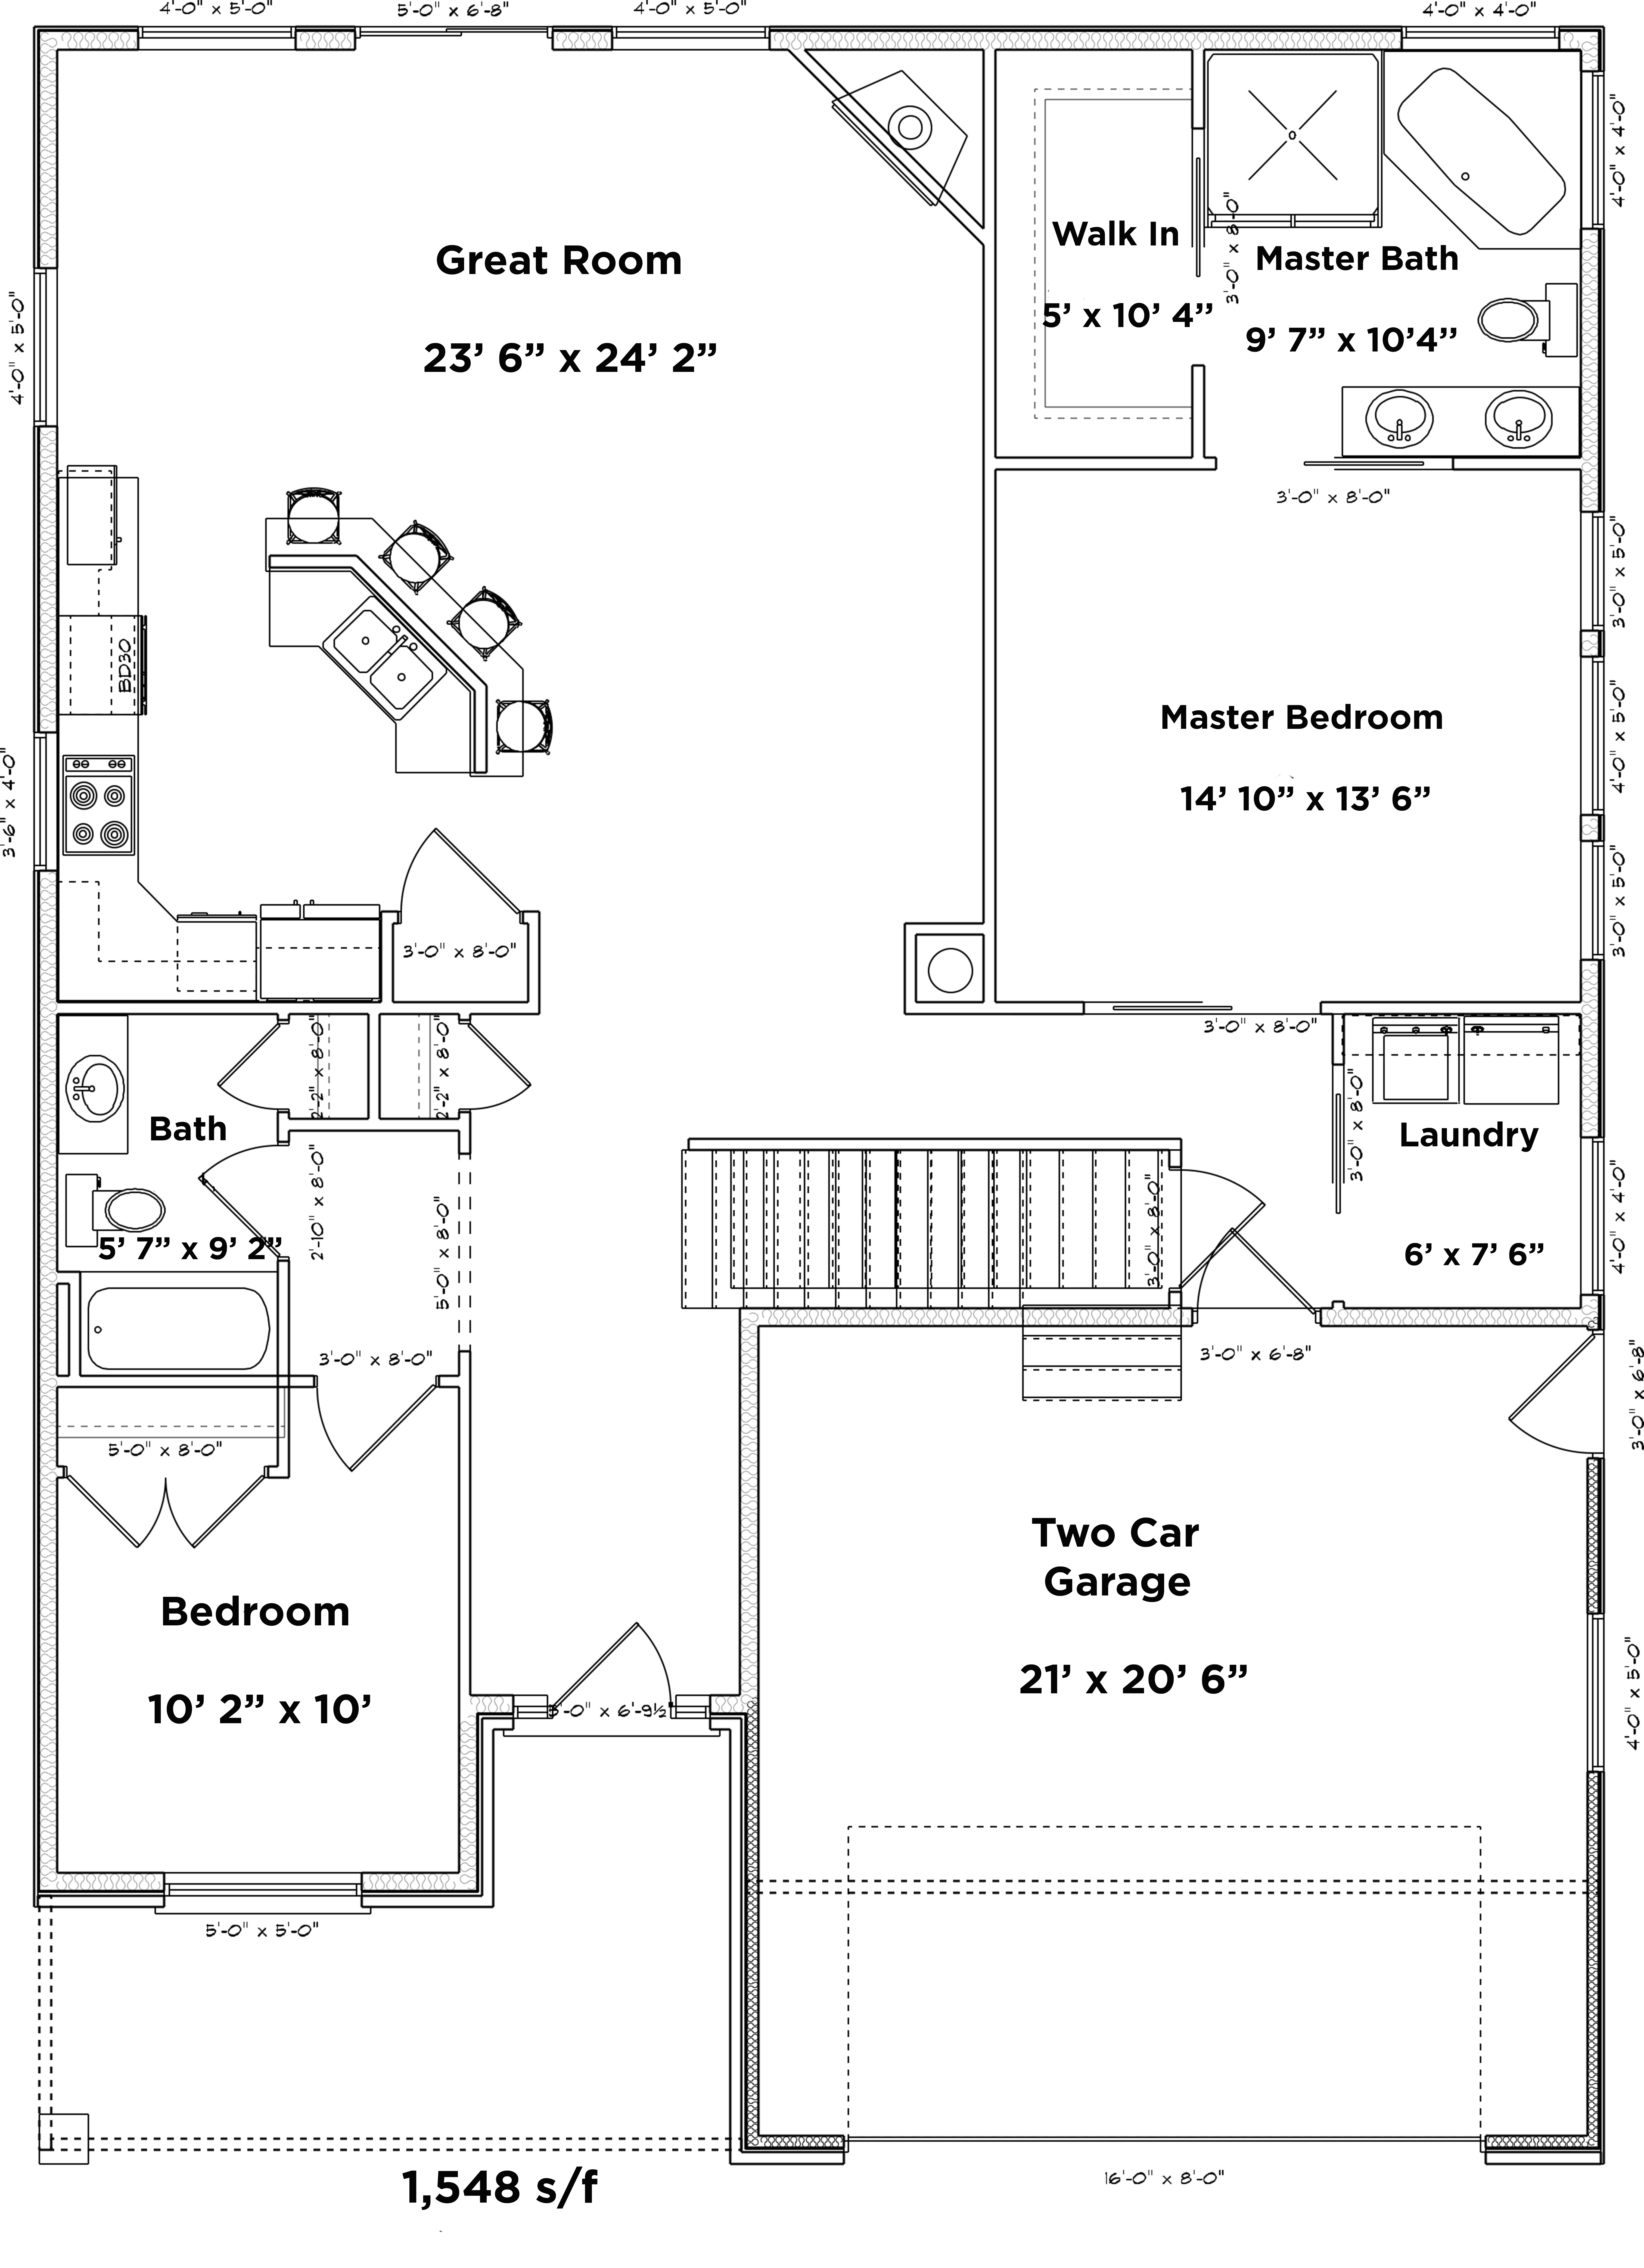 House plan 187 1093 5 bdrm 1 878 sq ft traditional home for 10 x 11 room square feet